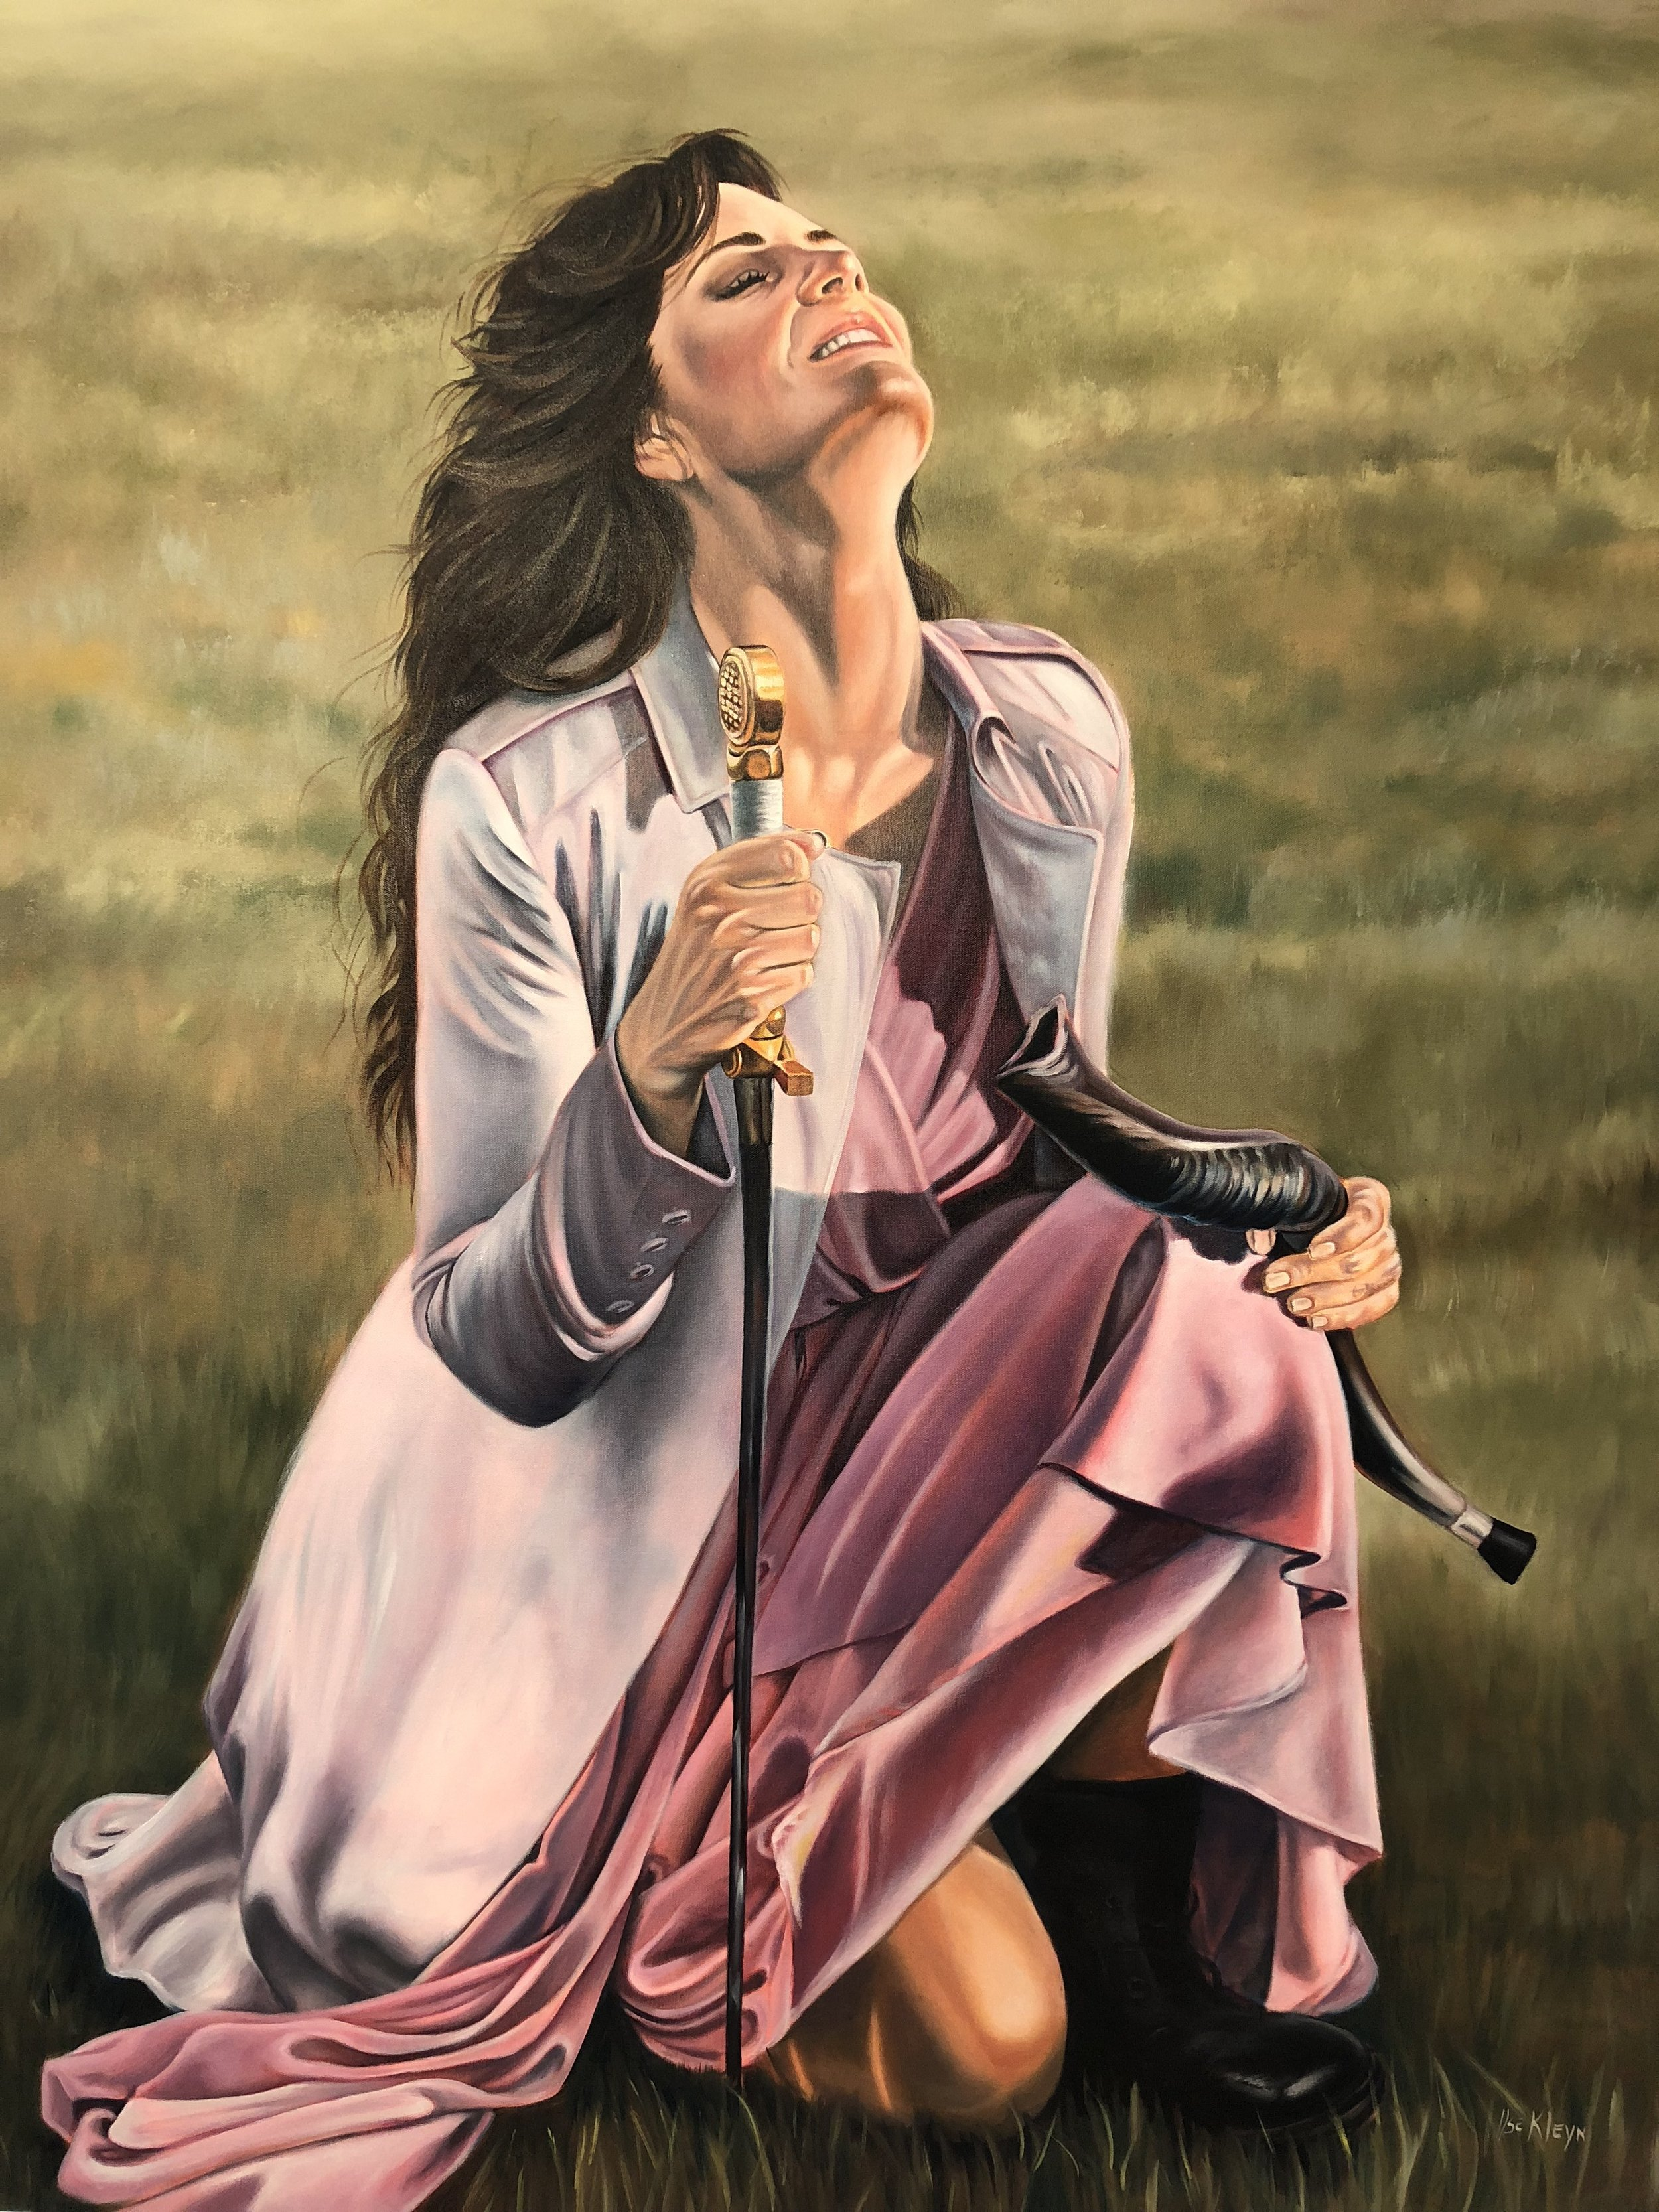 """""""It's Time"""" painting gifted to me on Monday evening by South African artist -  Ilse Kleyn .  Scripture reference: Isaiah 60:1 """"Arise and shine, for your light has come, and the Glory of the Lord has risen upon you!""""  You will see the significance of this once you have read my full blog post."""